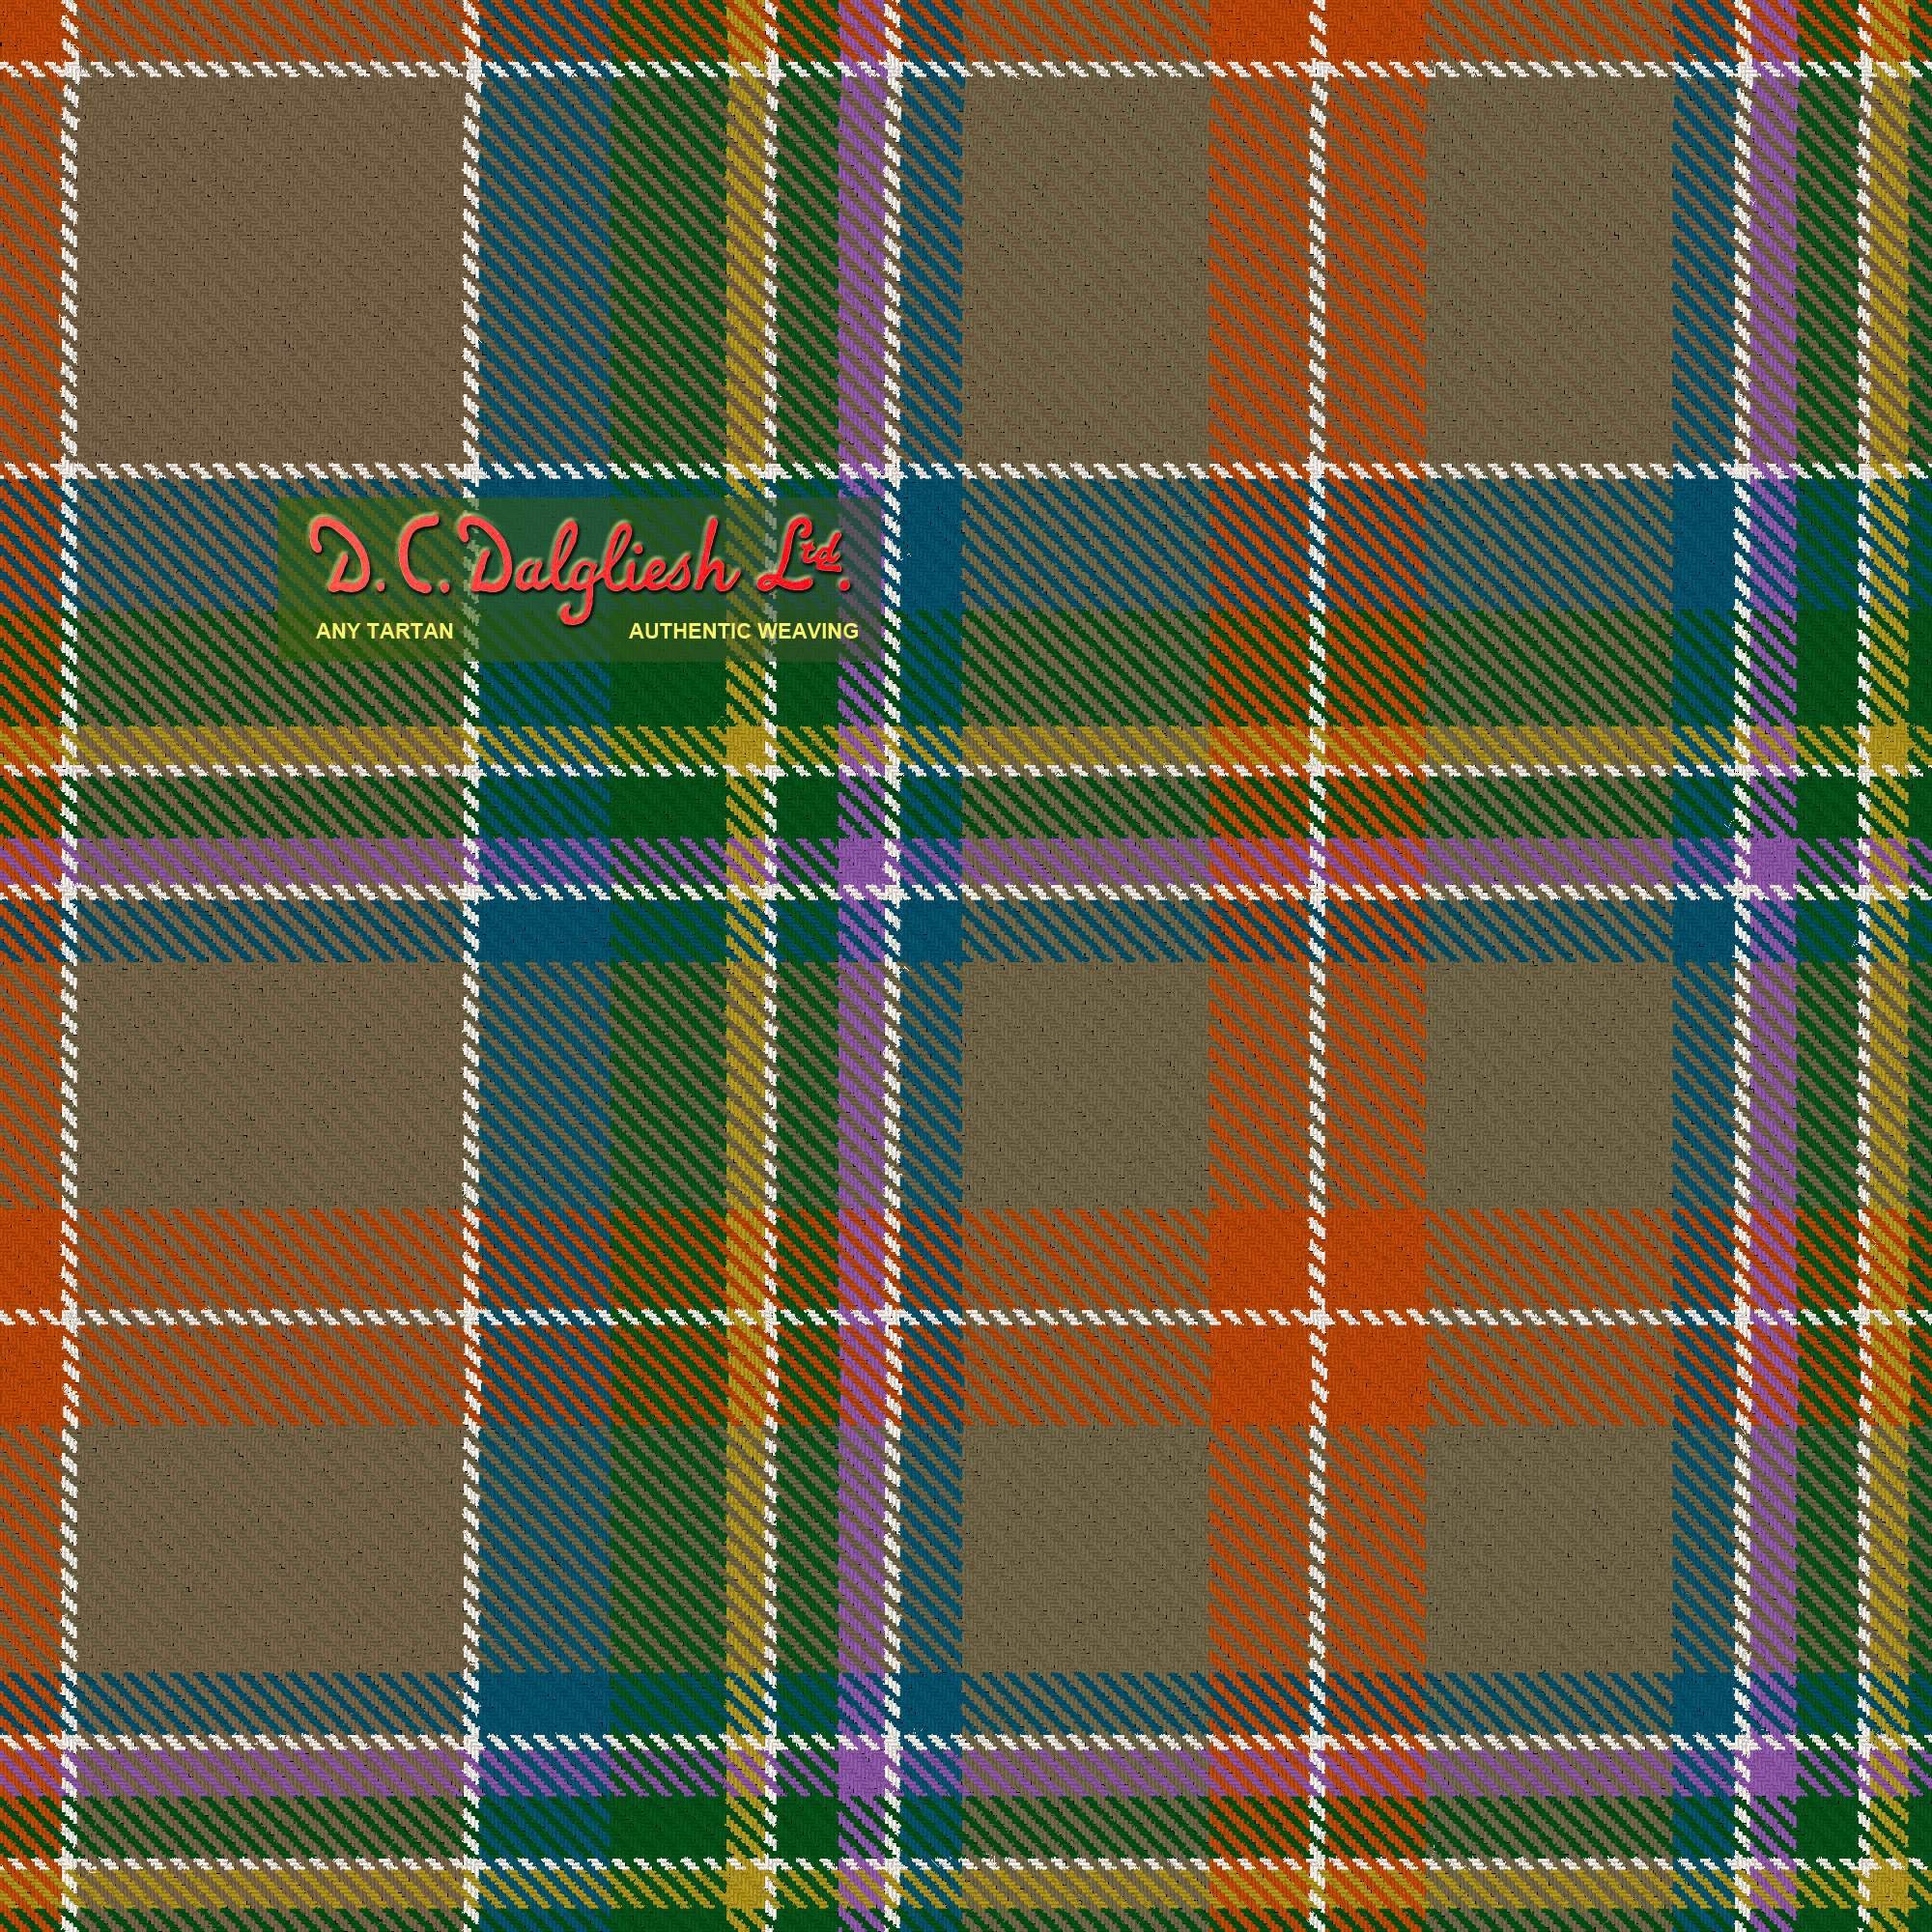 Prince Charles Edward Stuart #6 (Ancient Colours)